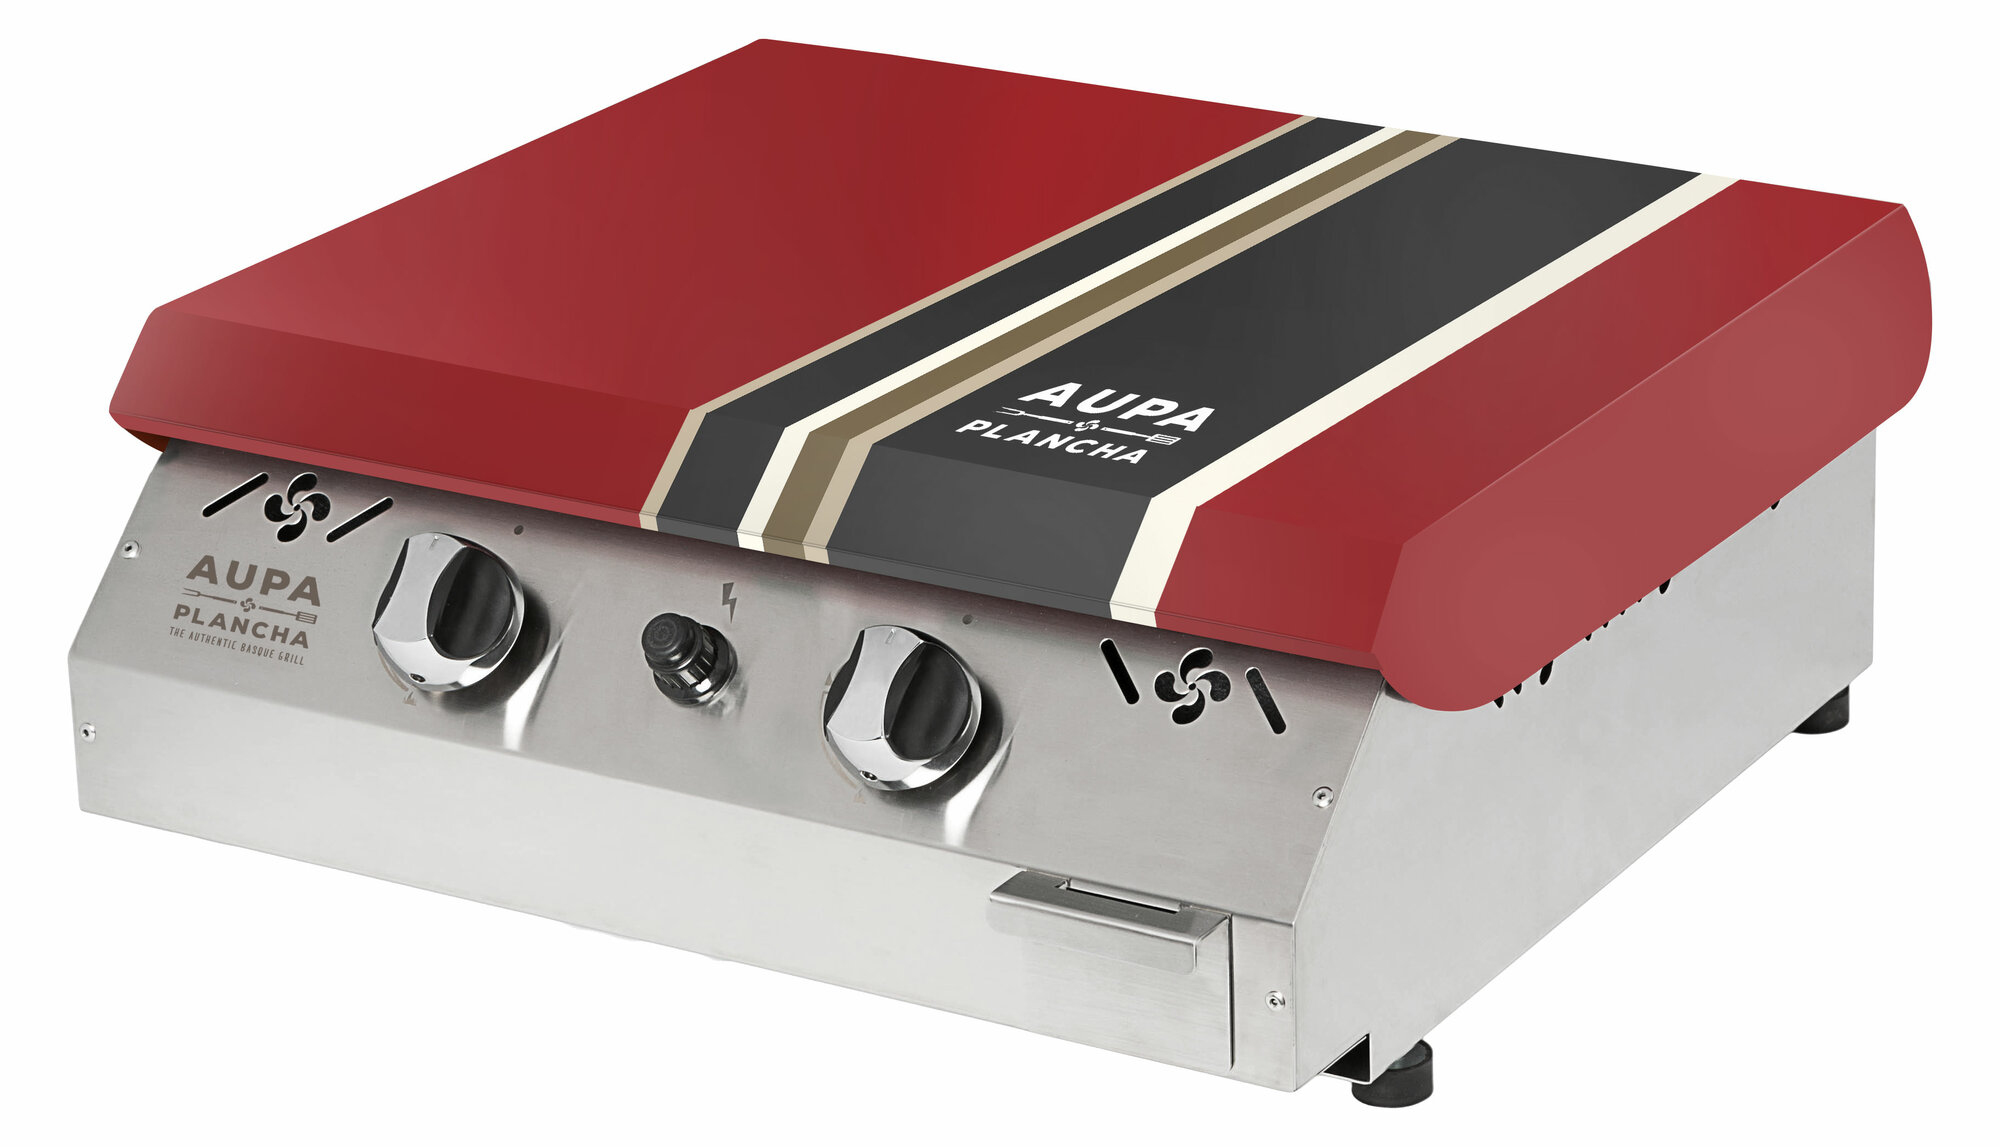 aupa plancha 20 flattop 2 burner portable propane gas. Black Bedroom Furniture Sets. Home Design Ideas